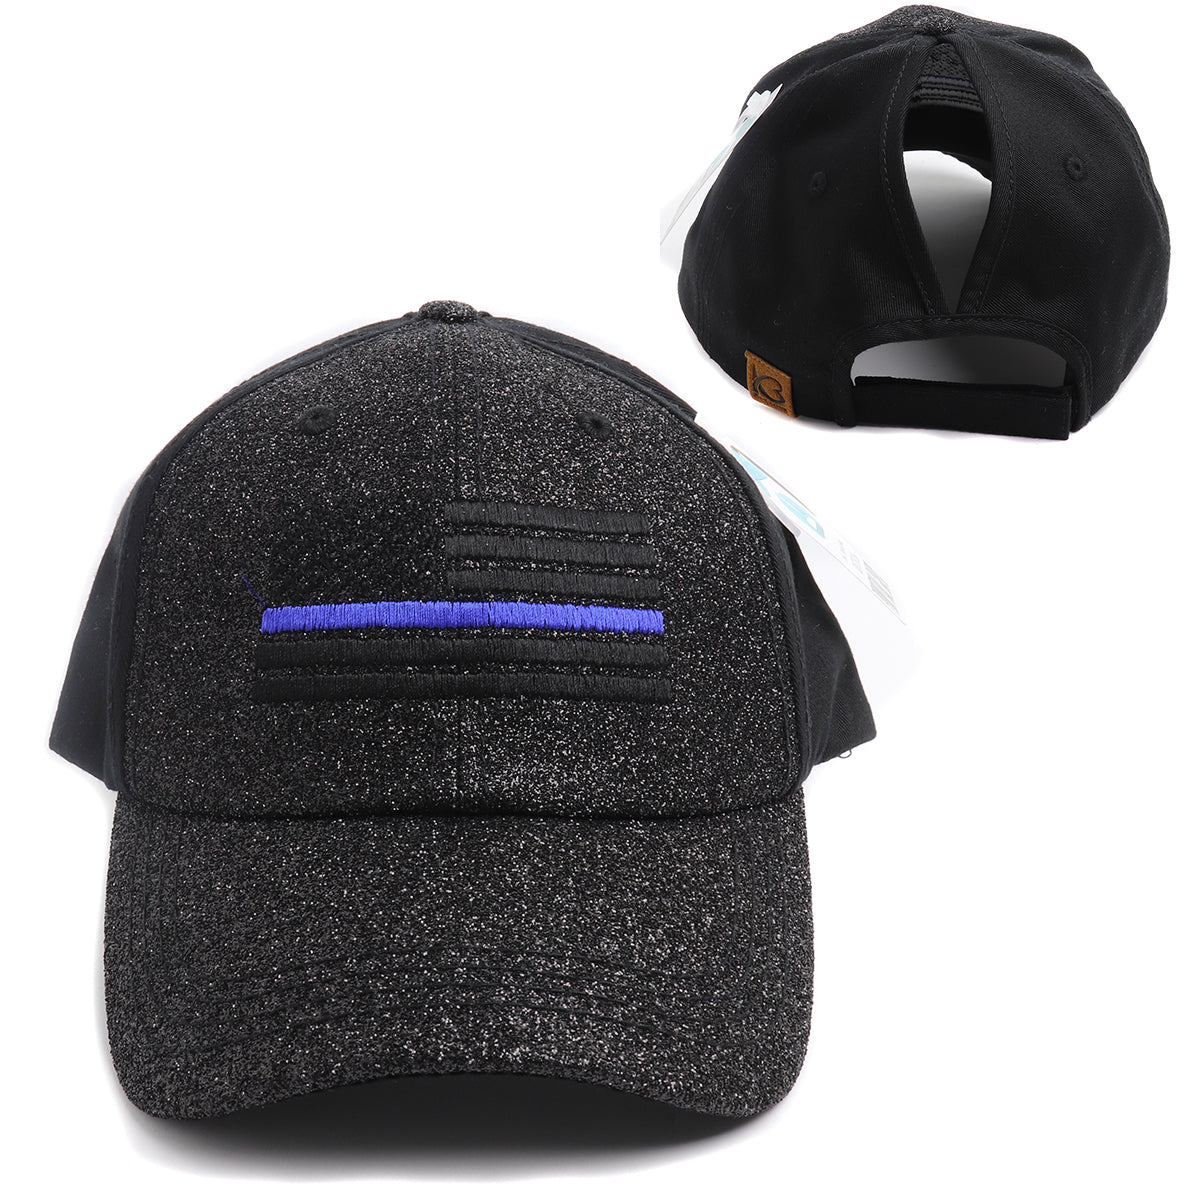 New Thin Blue Line Glitter & Cotton Women's High Ponytail Hat